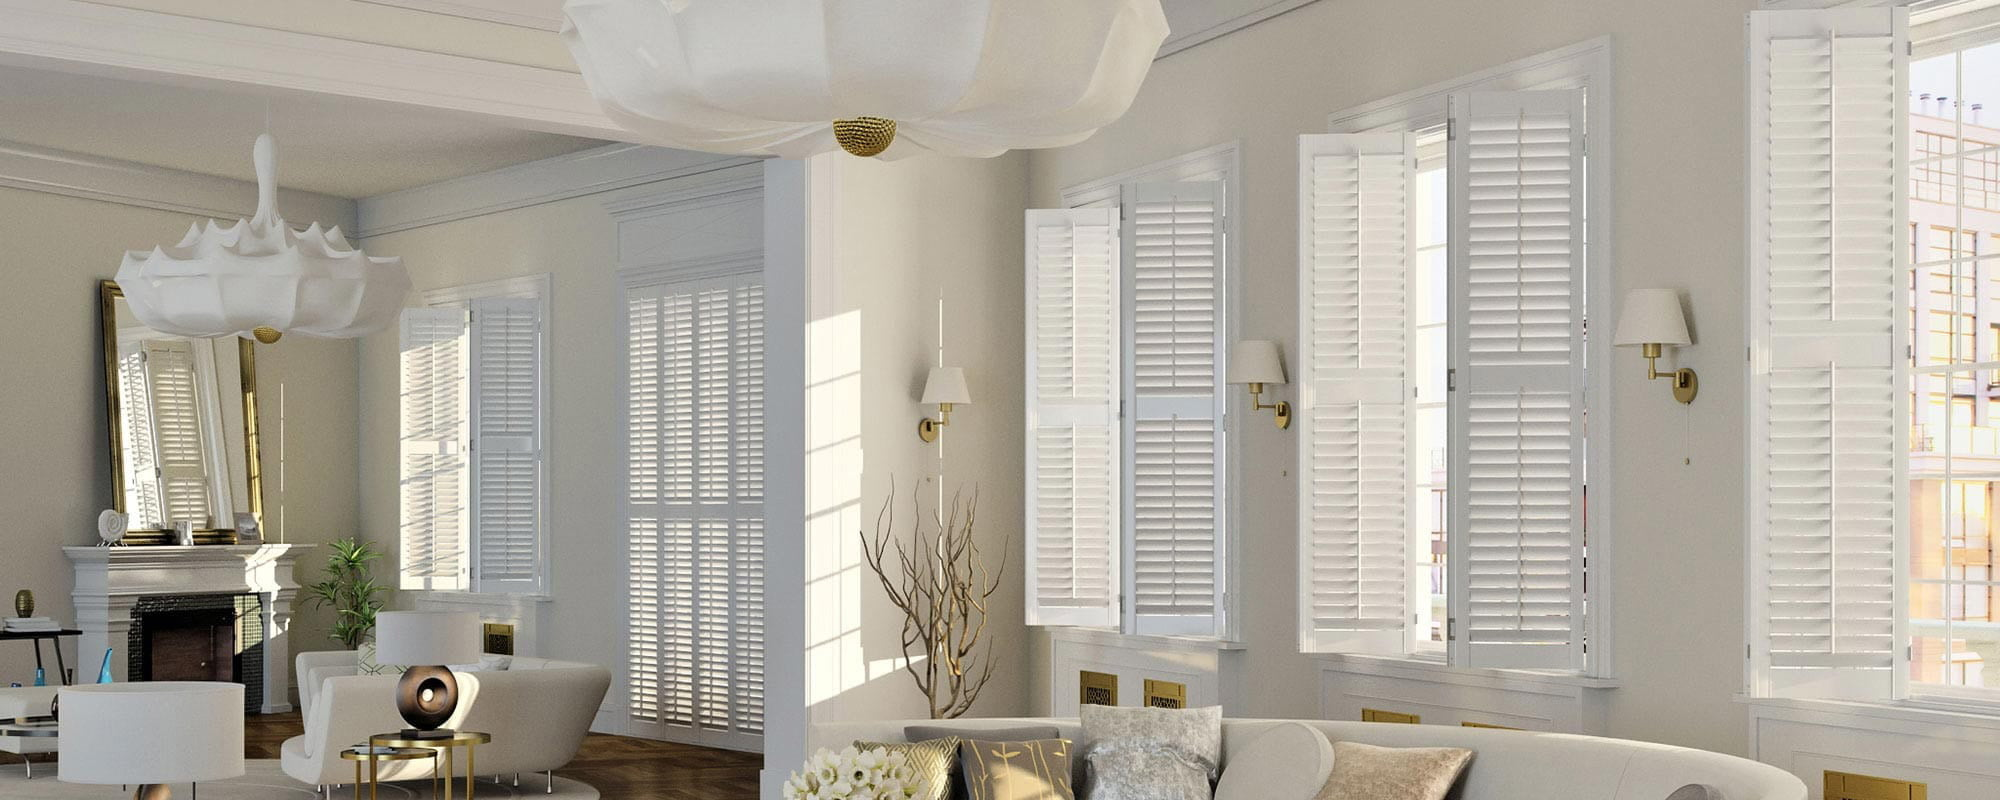 shutters day